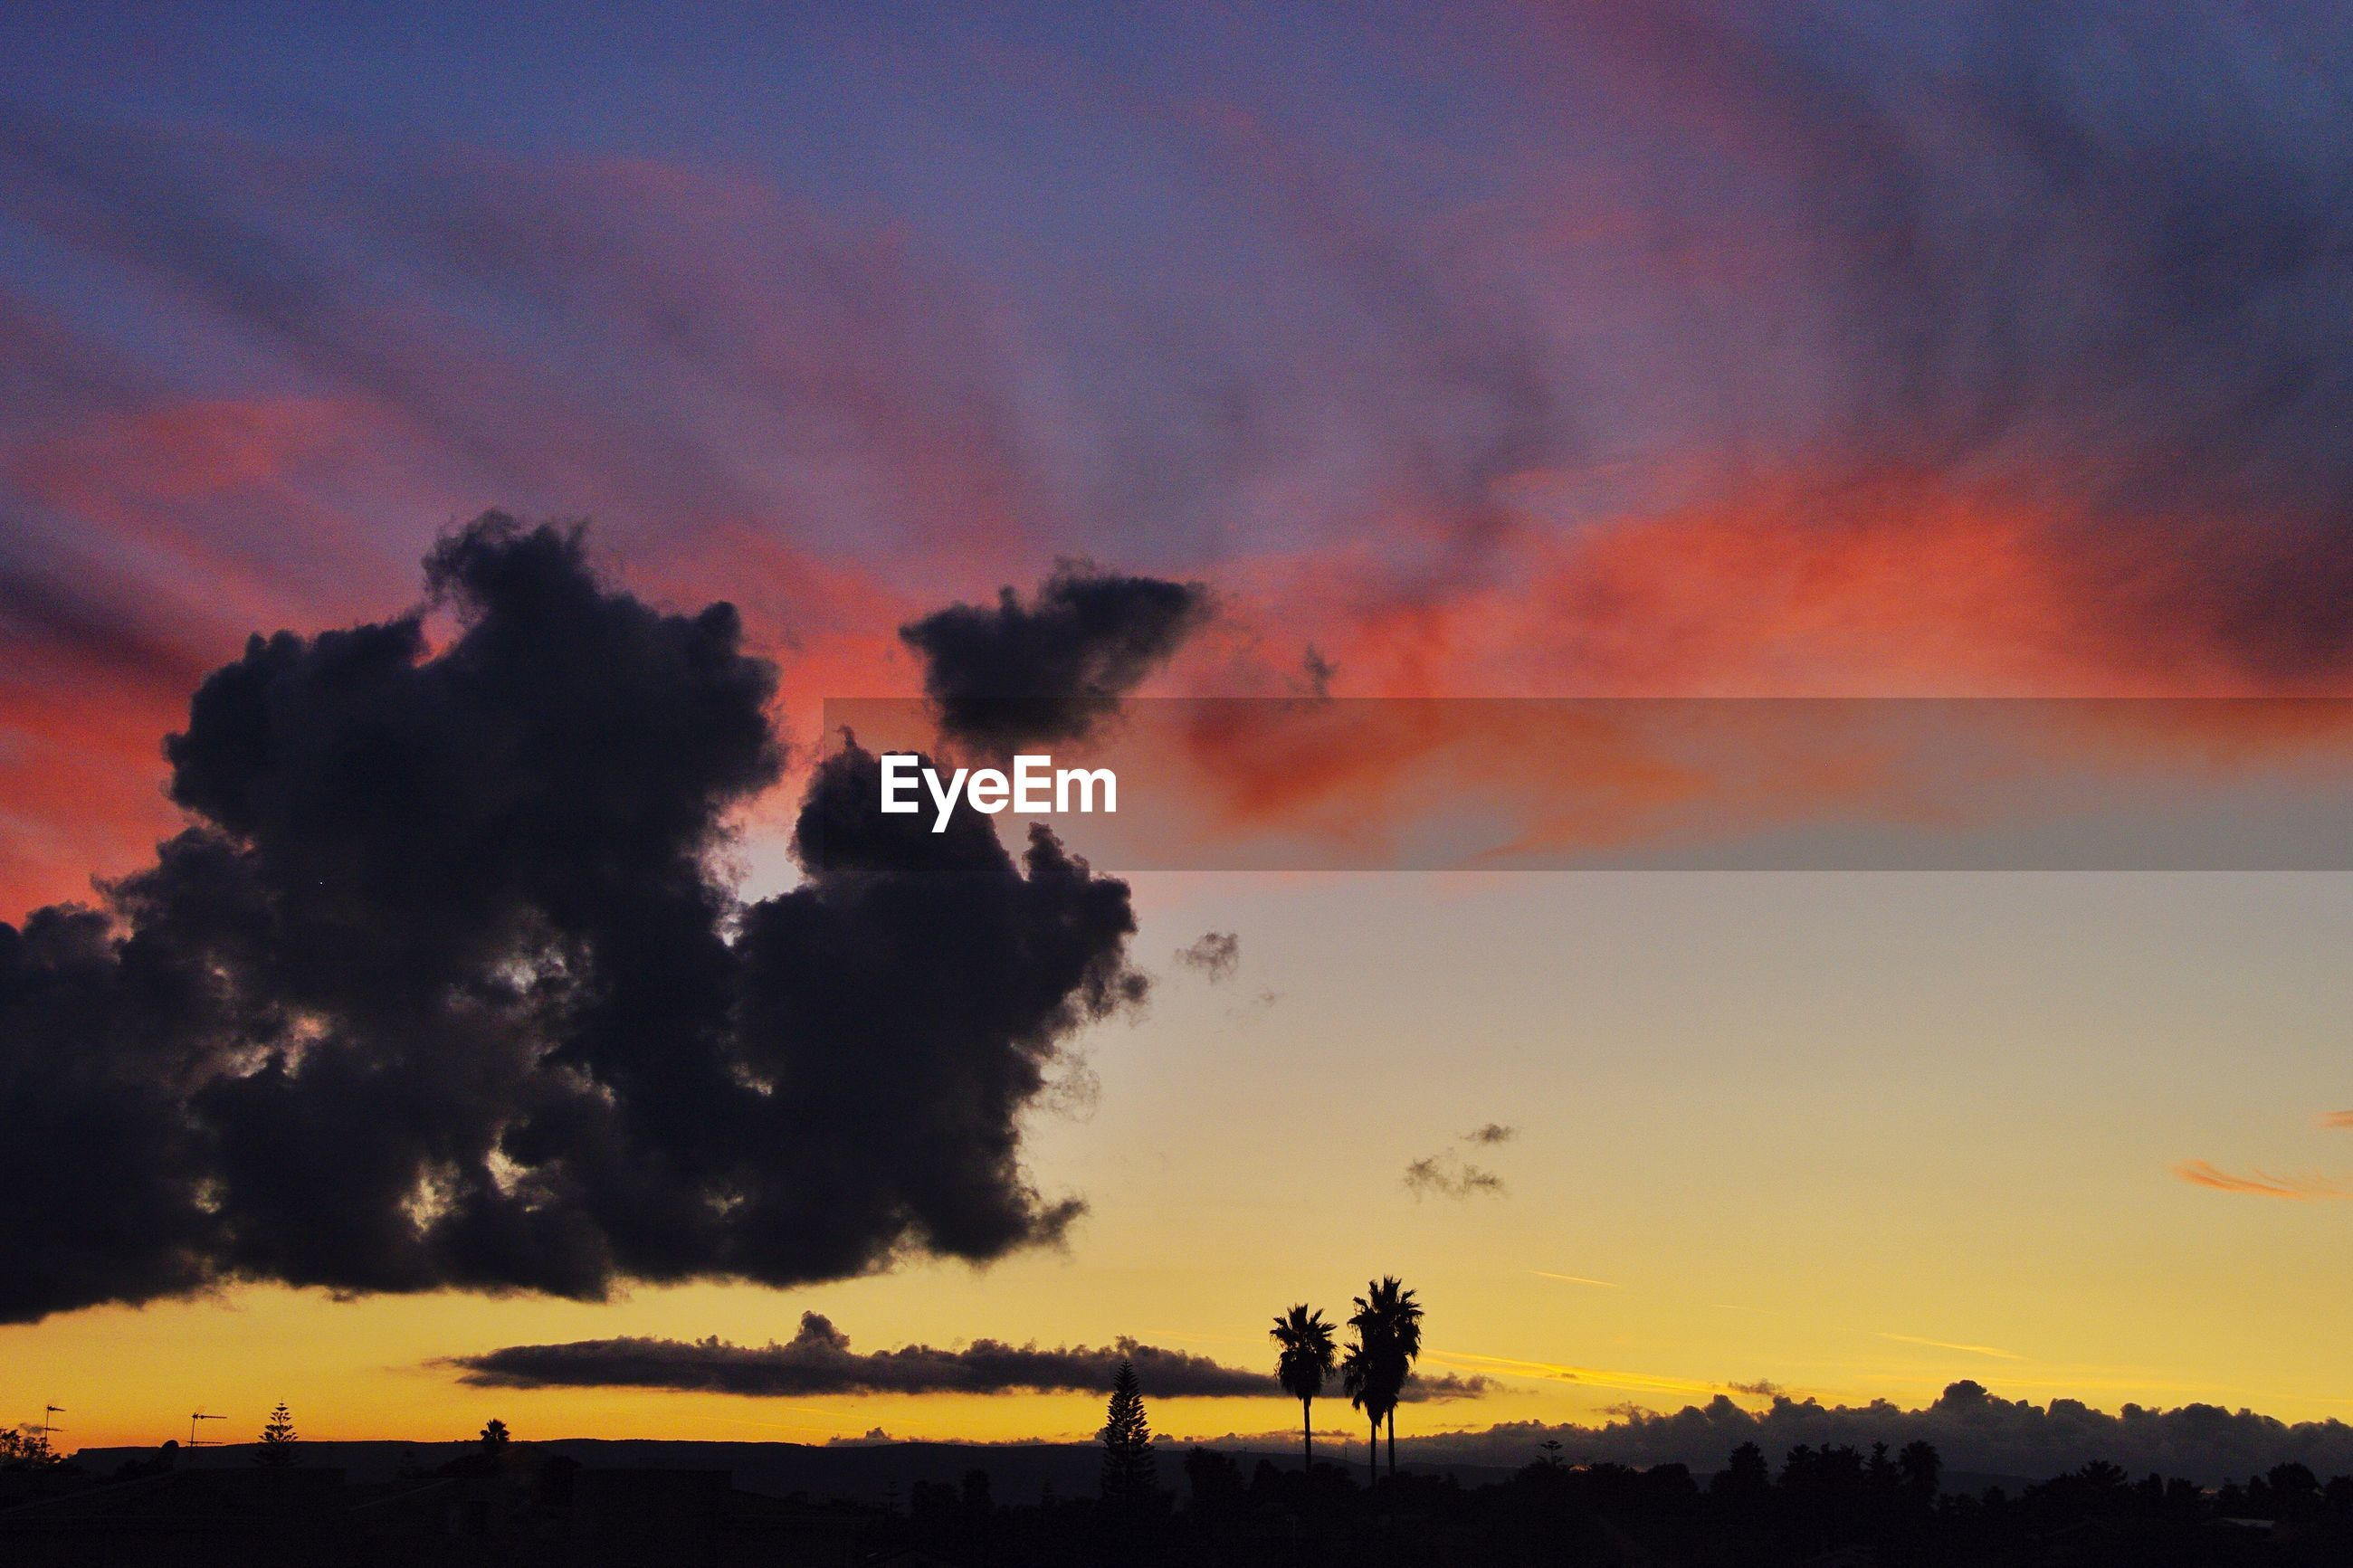 Low angle view of silhouette trees against dramatic sky during sunset